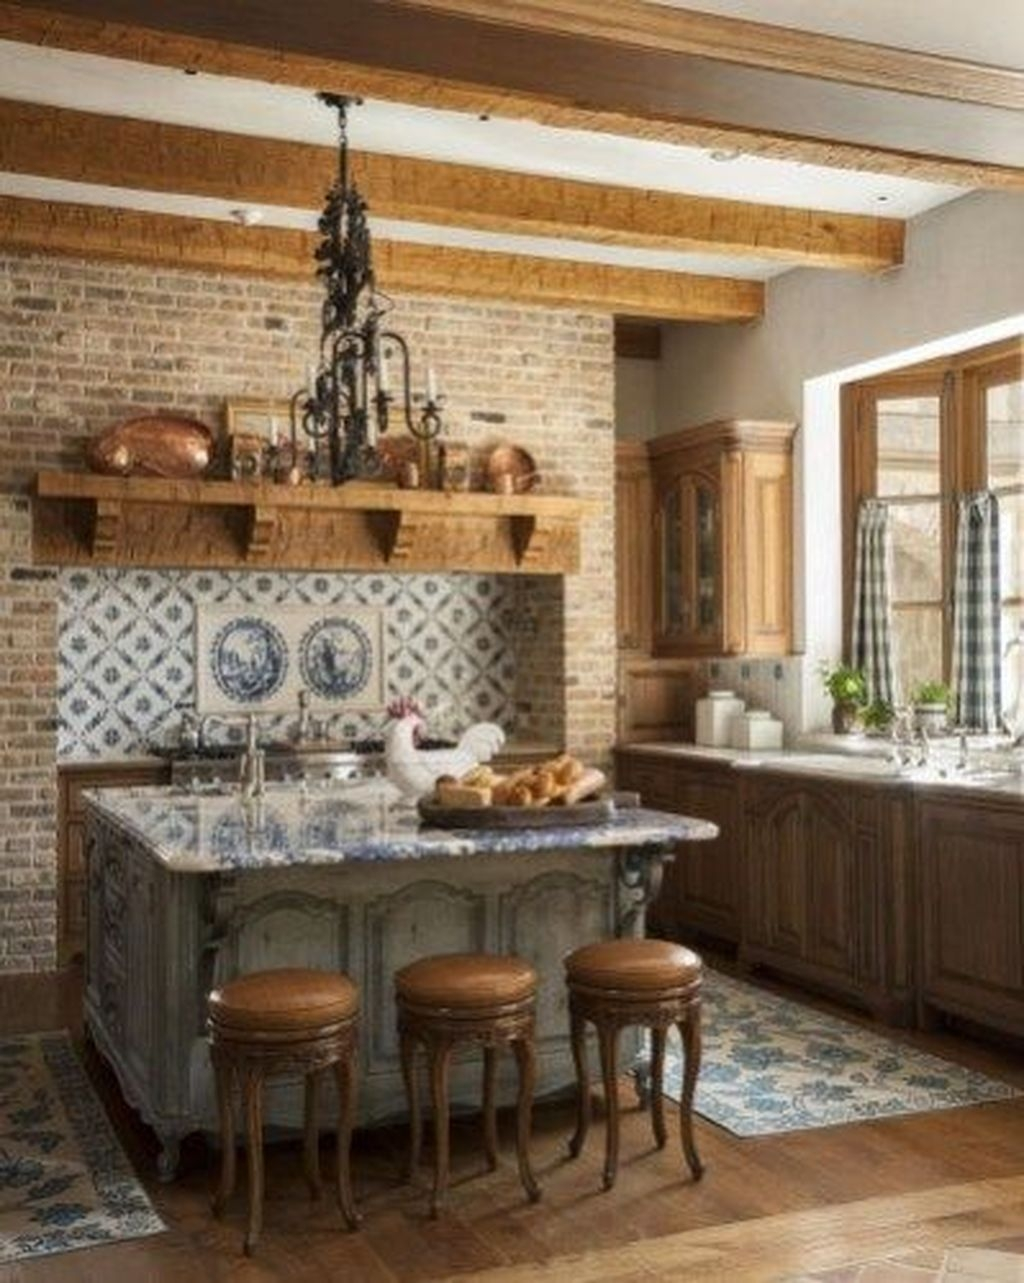 The Best French Country Style Kitchen Decor Ideas 45